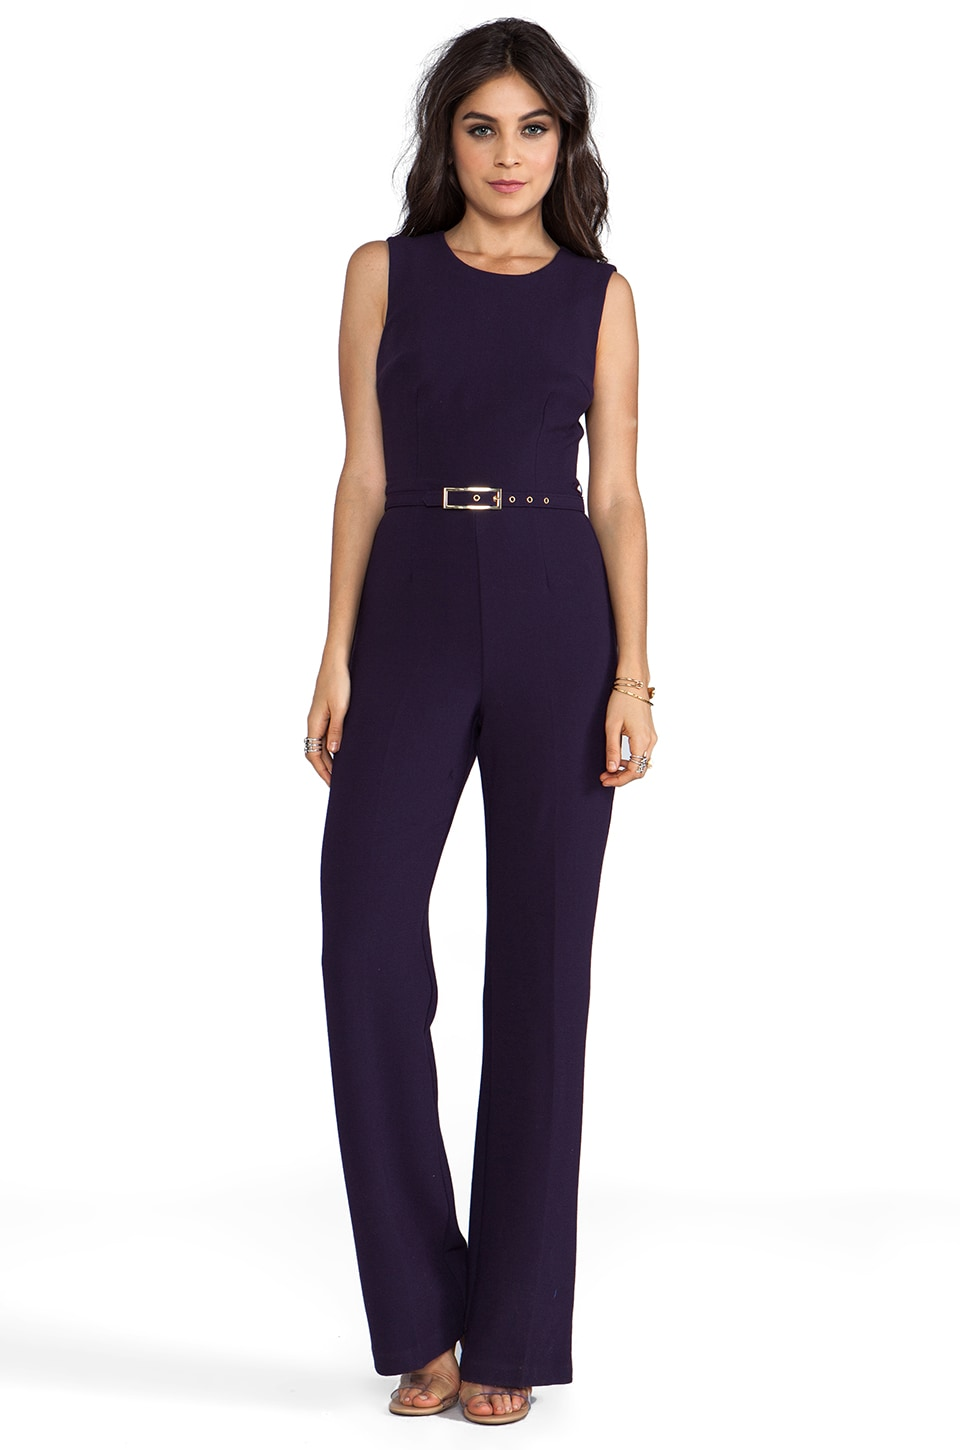 Trina Turk Double Crepe Luxe Jeanie Jumpsuit in Black Plum